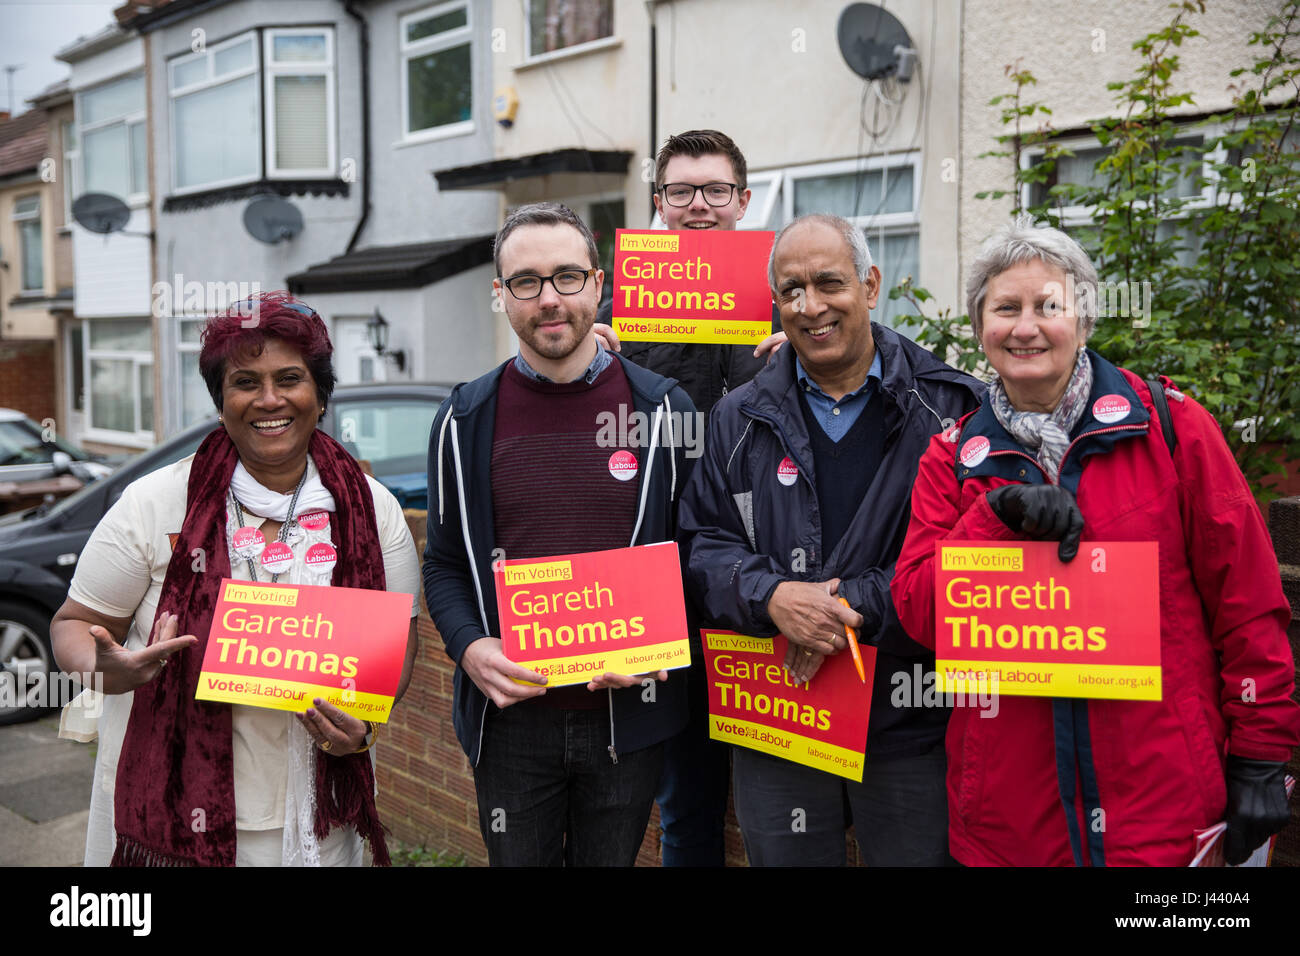 London, UK. 9th May, 2017. Councillor Kairul Kareema Marikar and fellow Labour Party members canvas support in South - Stock Image